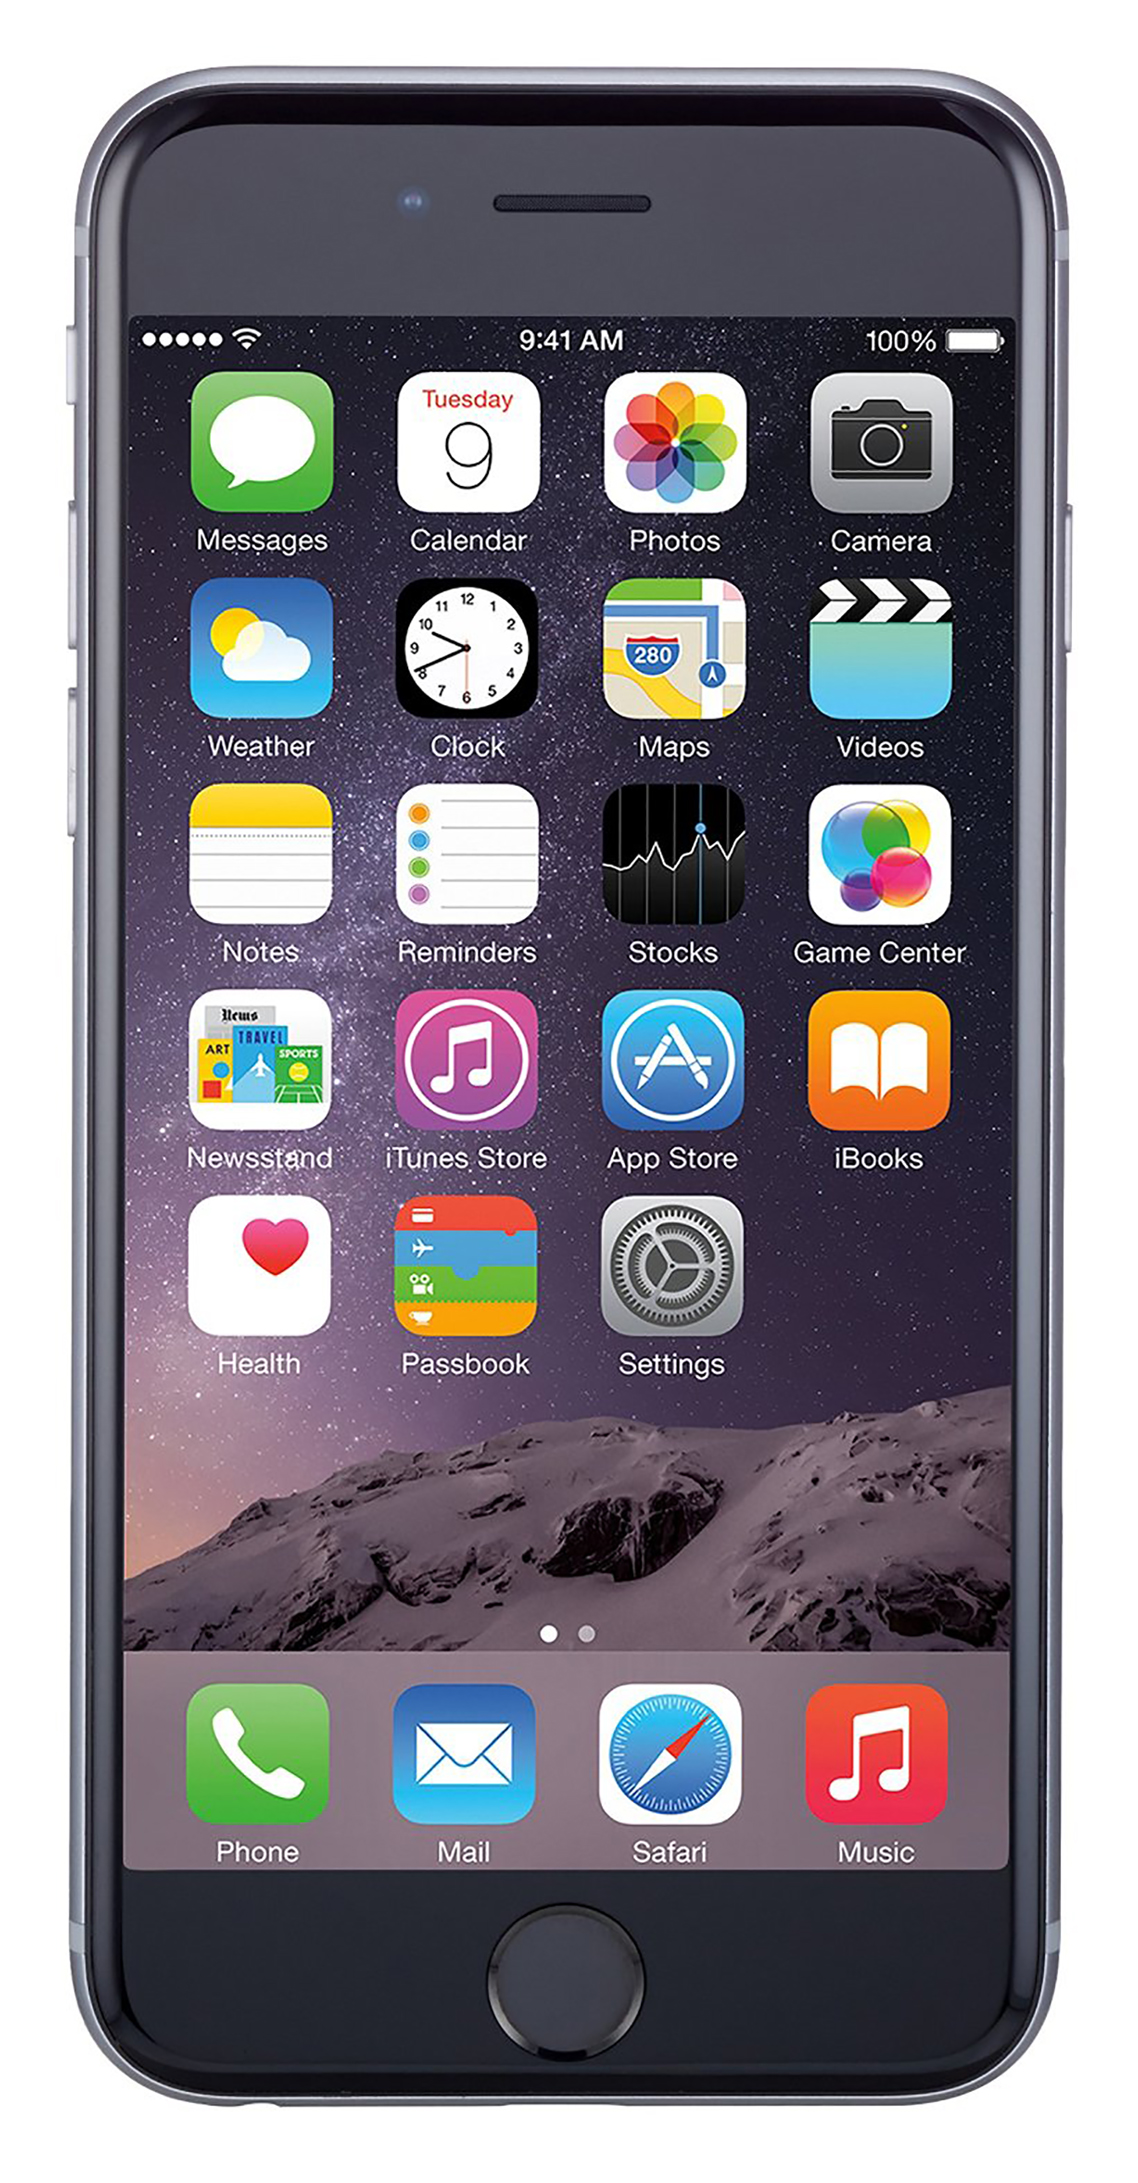 Refurb Apple iPhone 6 64GB Unlocked GSM Phone (Space Gray)